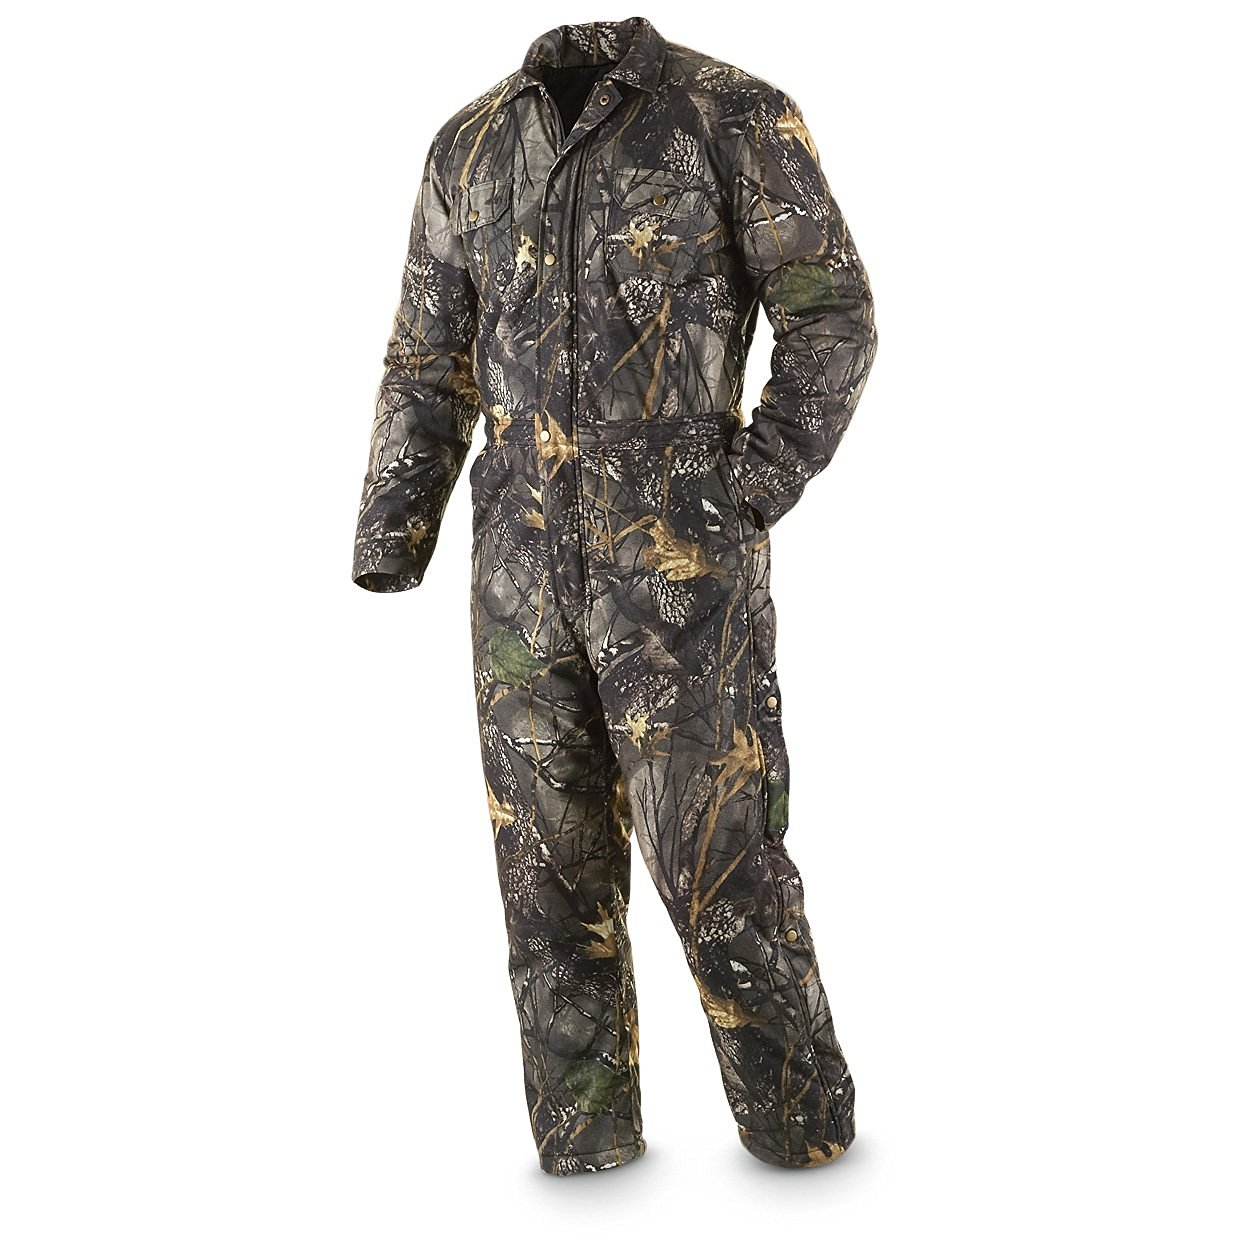 2380eddeff203 Get Quotations · World Famous Sports Insulated Waterproof Breathable  Coveralls Burley Camo